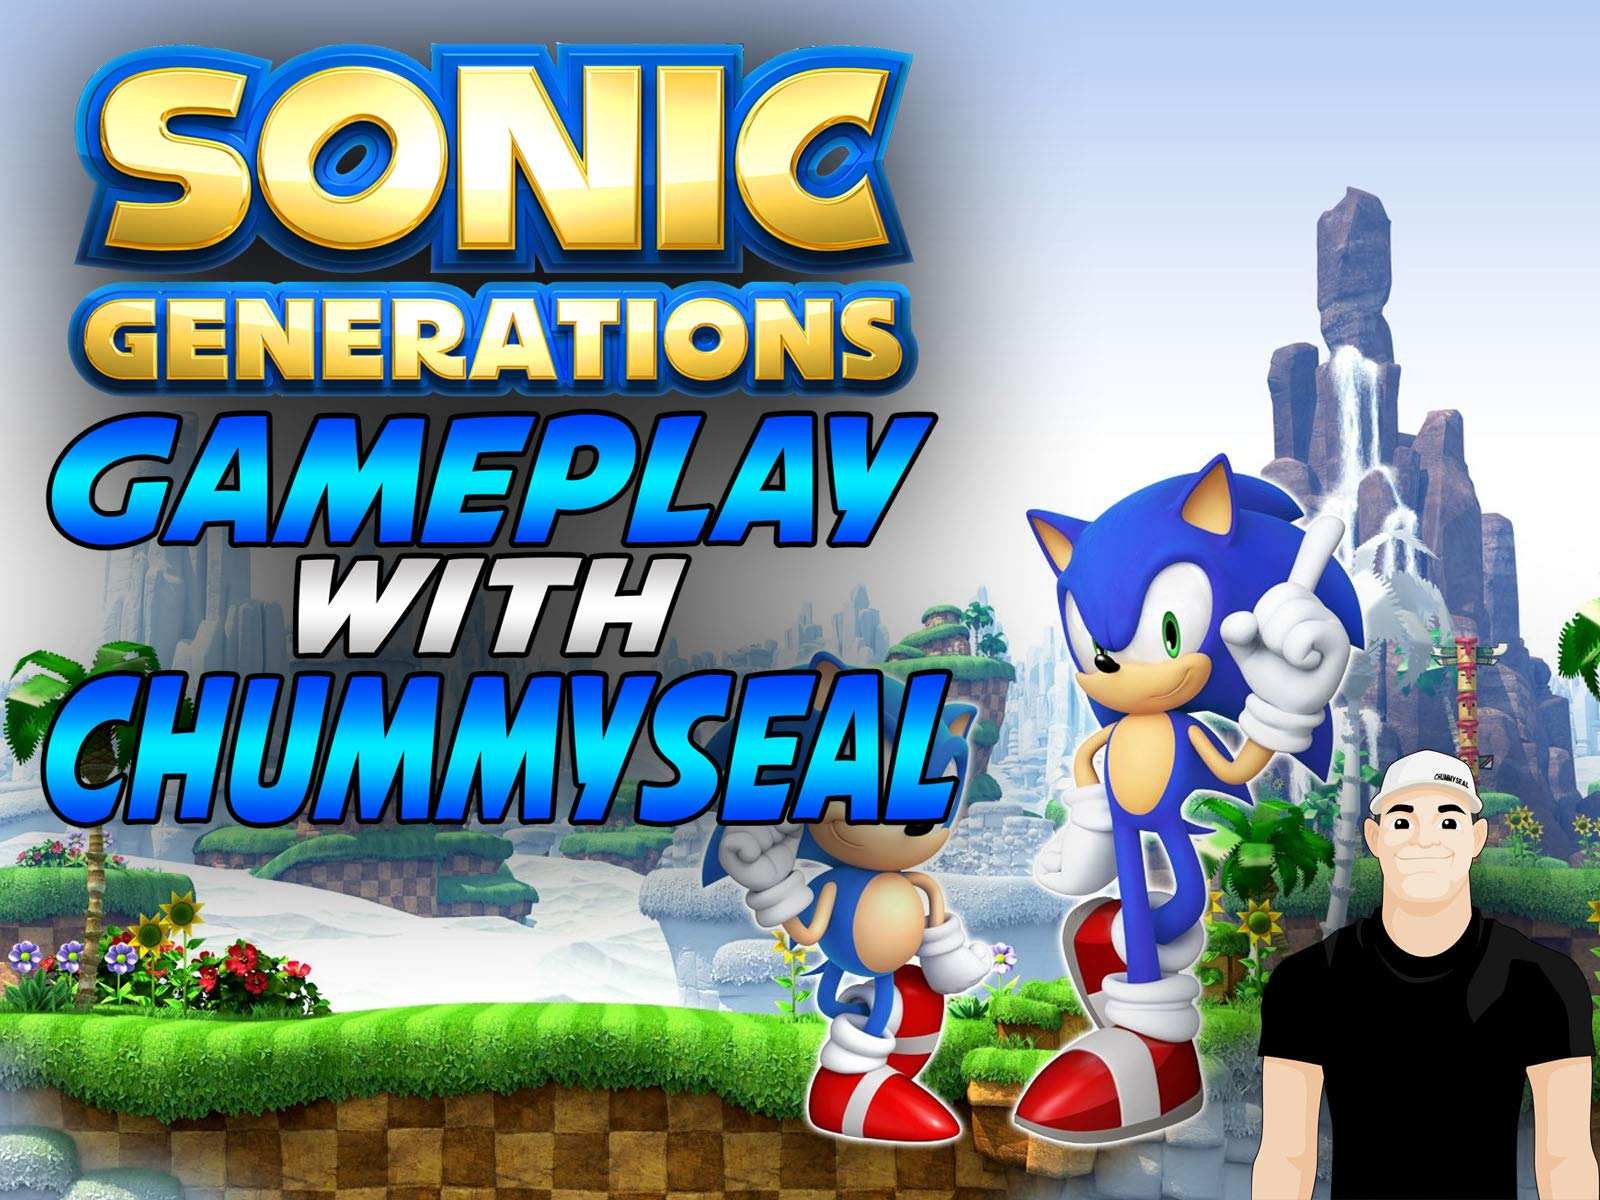 Watch Sonic Generations Gameplay With Chummy Seal On Amazon Prime Video Uk Newonamzprimeuk